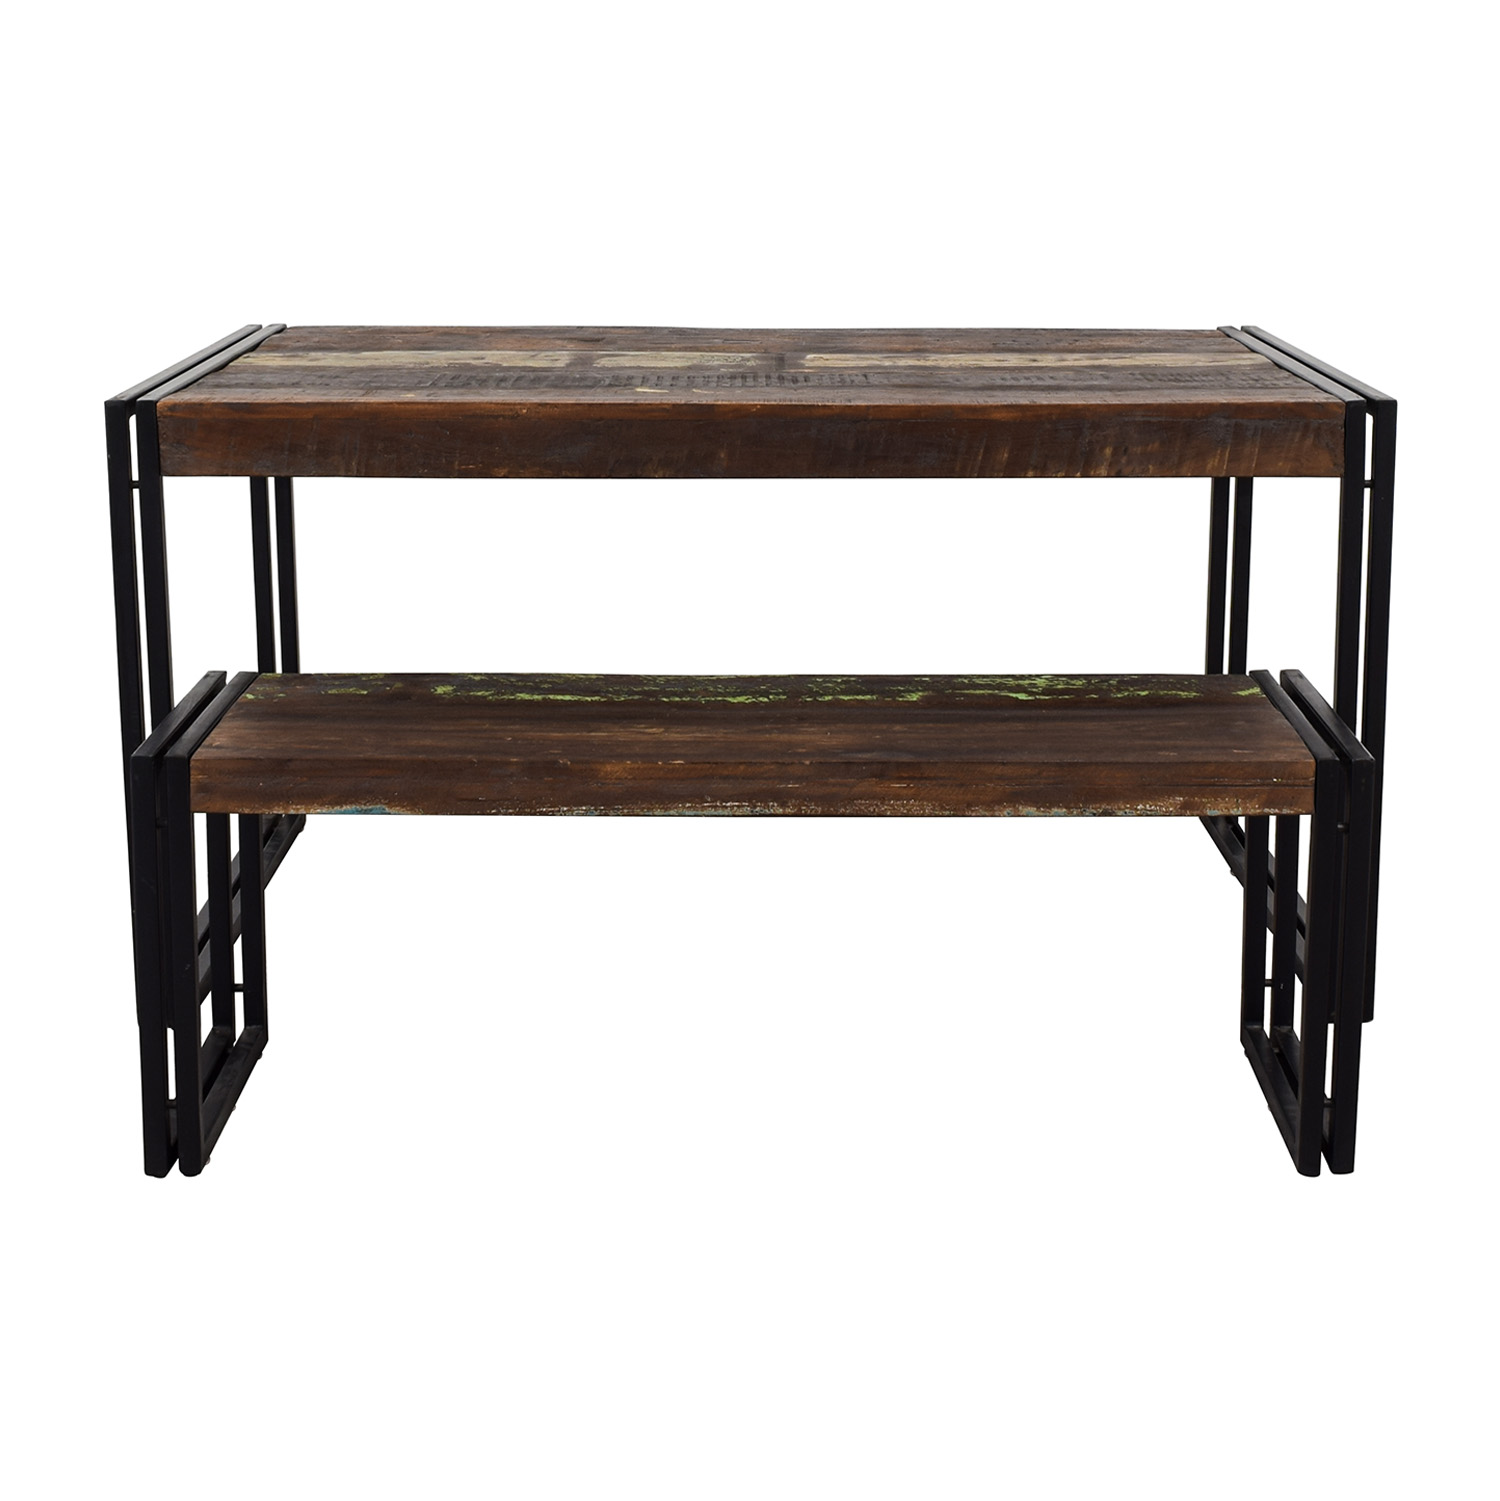 Timbergirl Solid Reclaimed Wood Dining Table With Bench / Tables